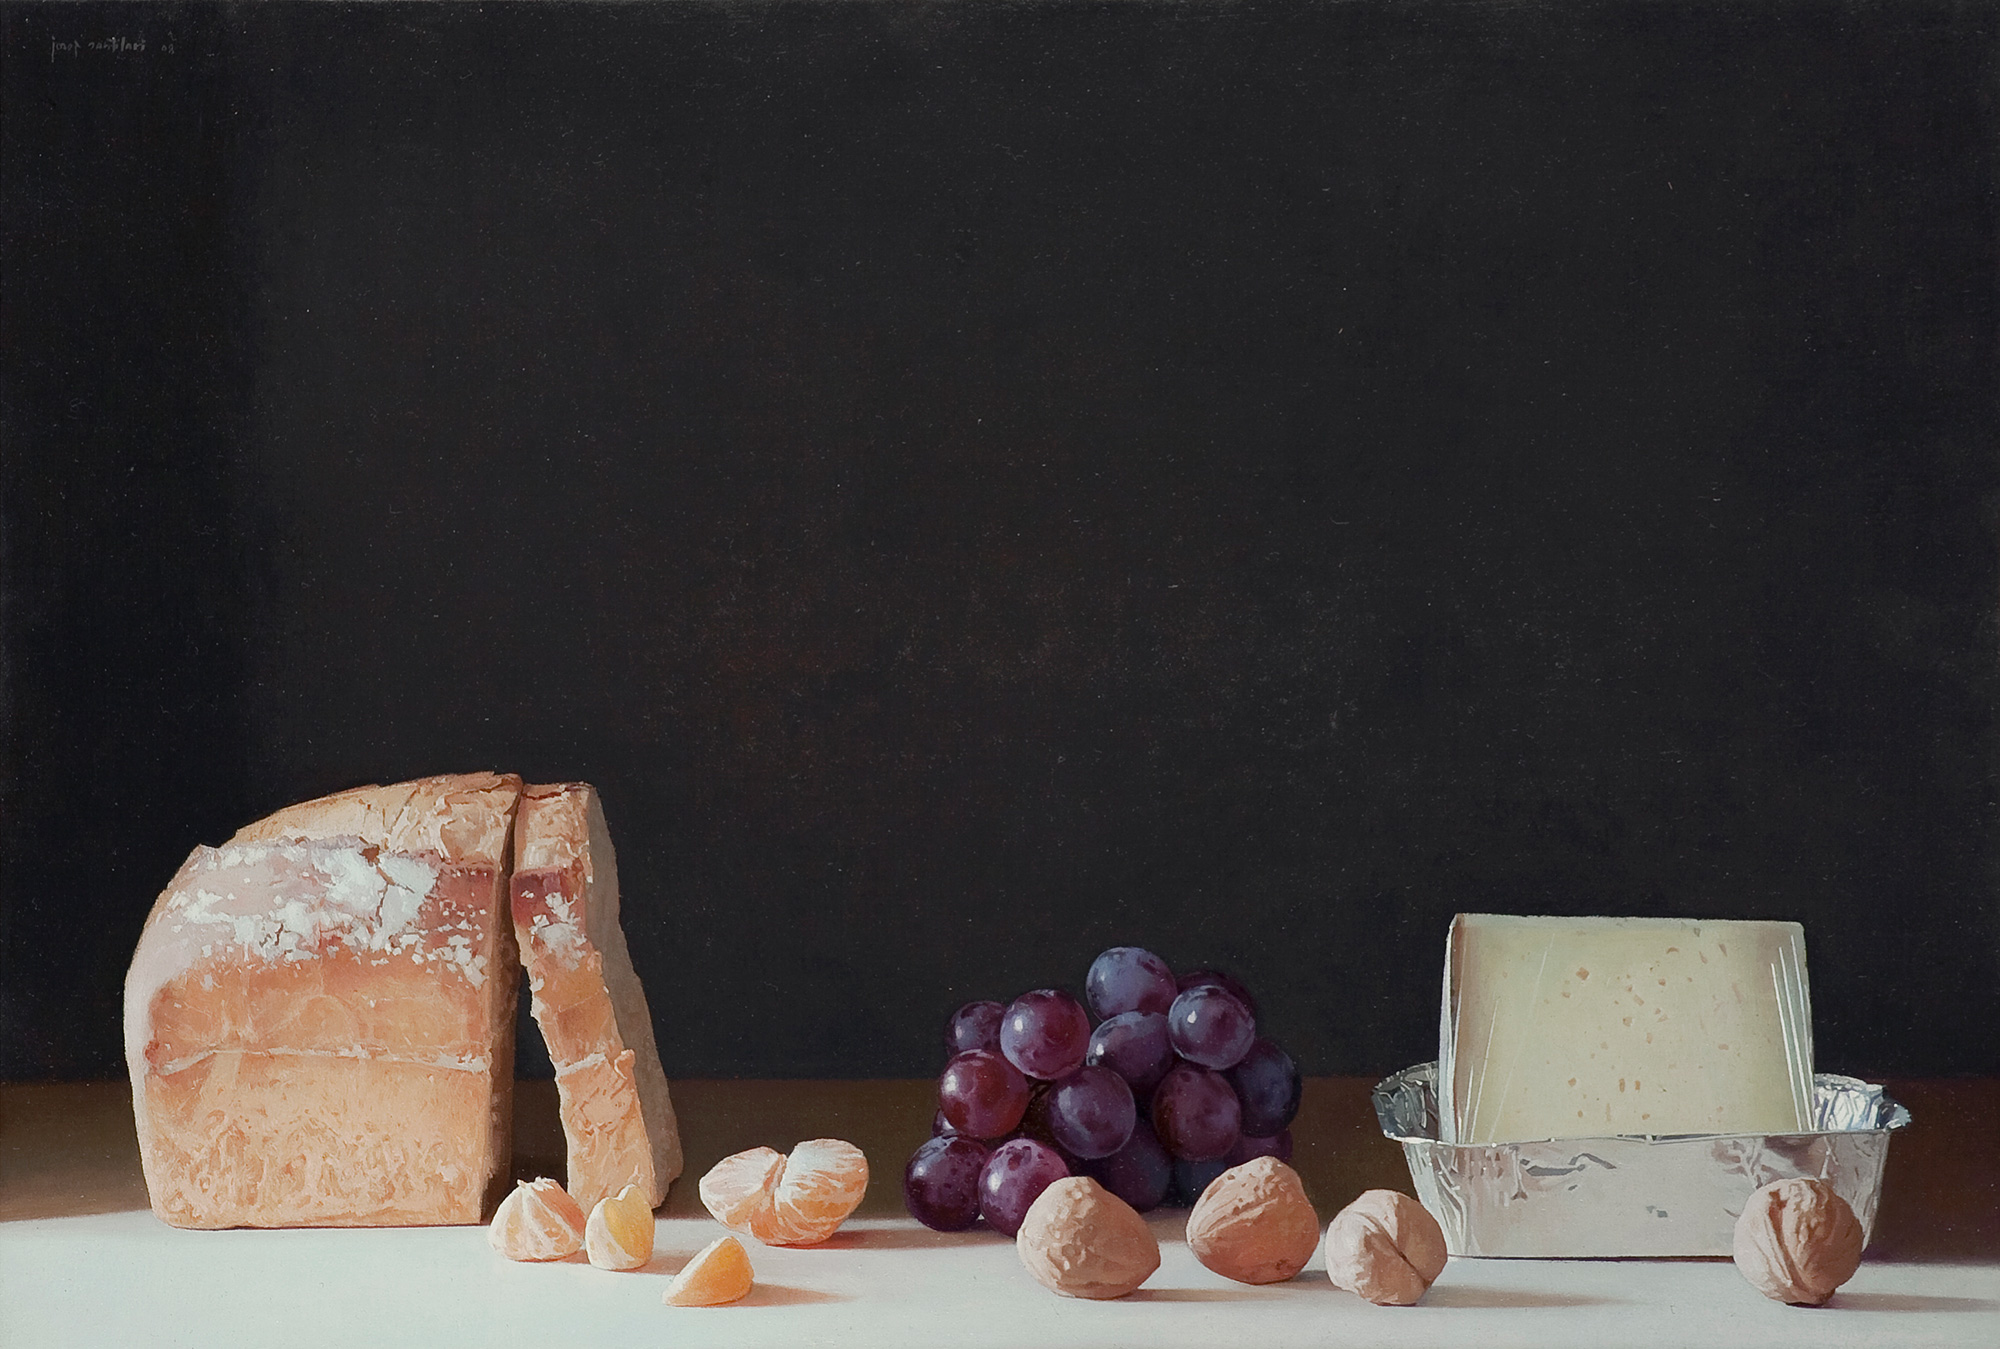 Bread, grapes and walnuts, Josep Santilari